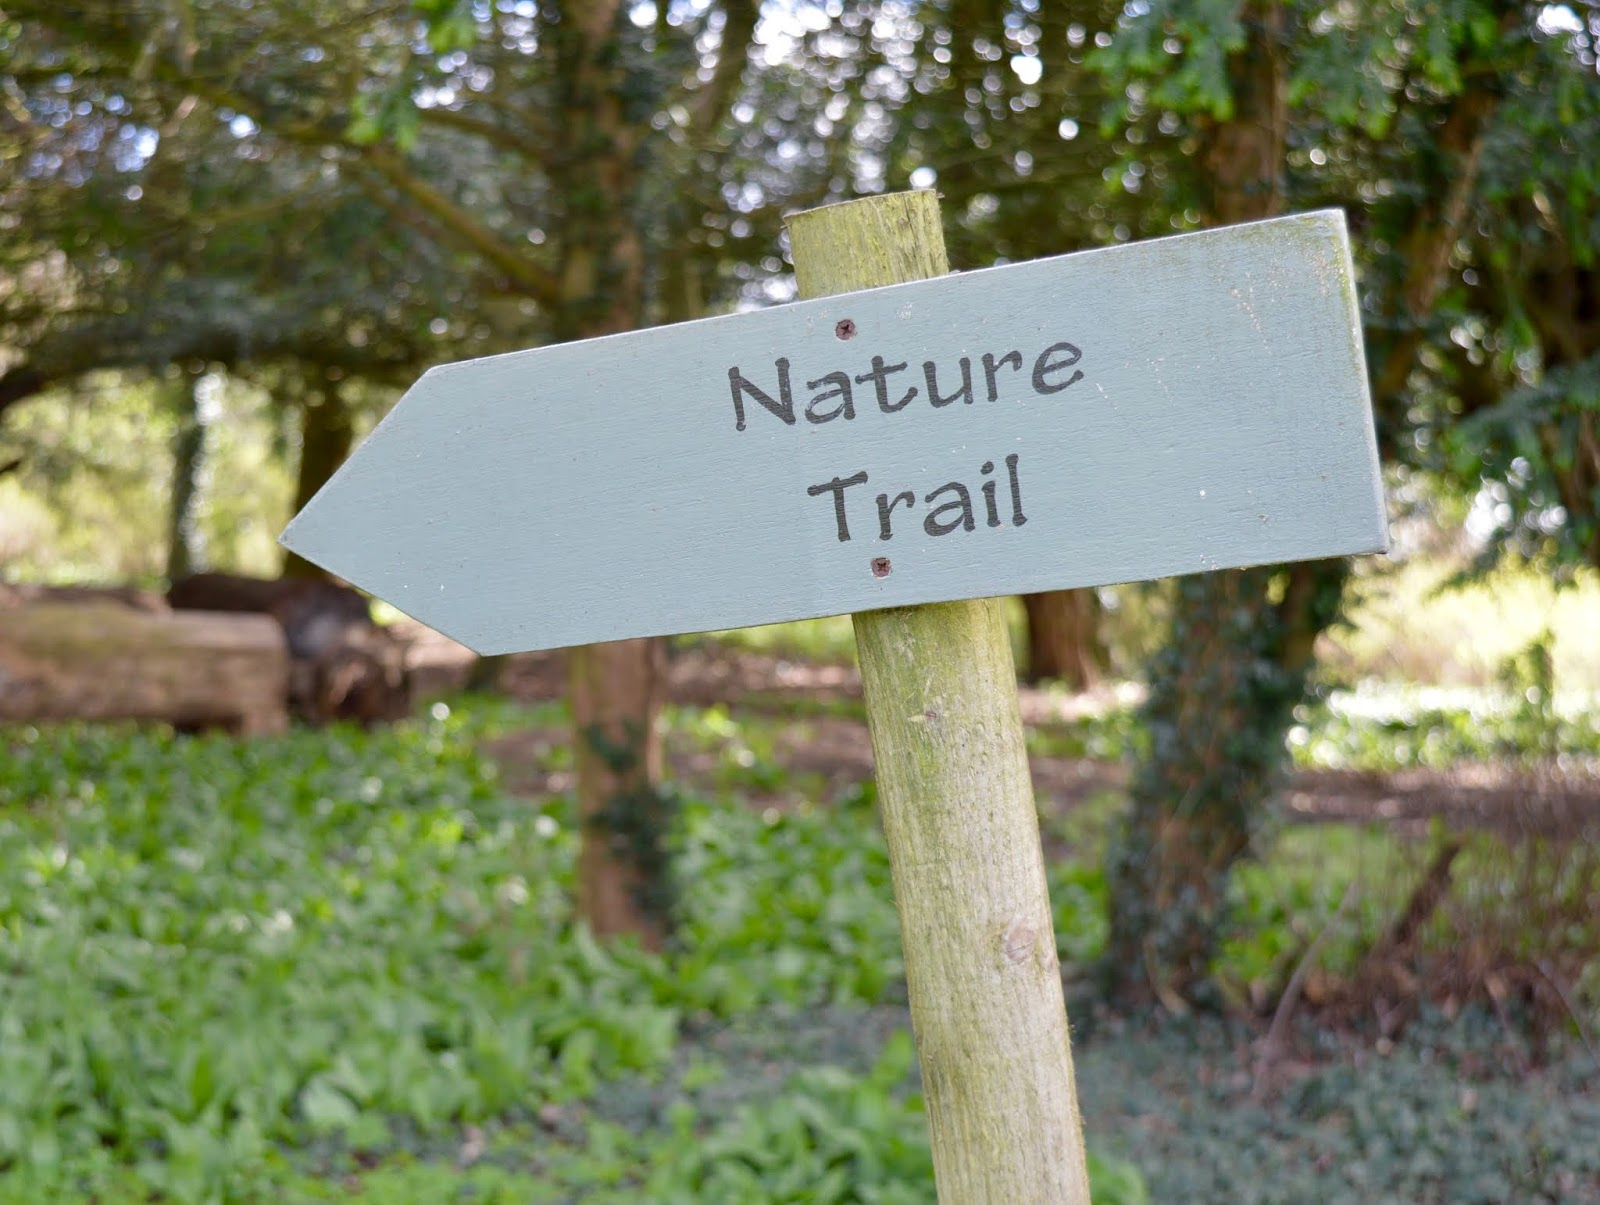 Sunday Lunch, Playgrounds & Birds of Prey at Walworth Castle, Darlington  - nature trail in ancient woodland